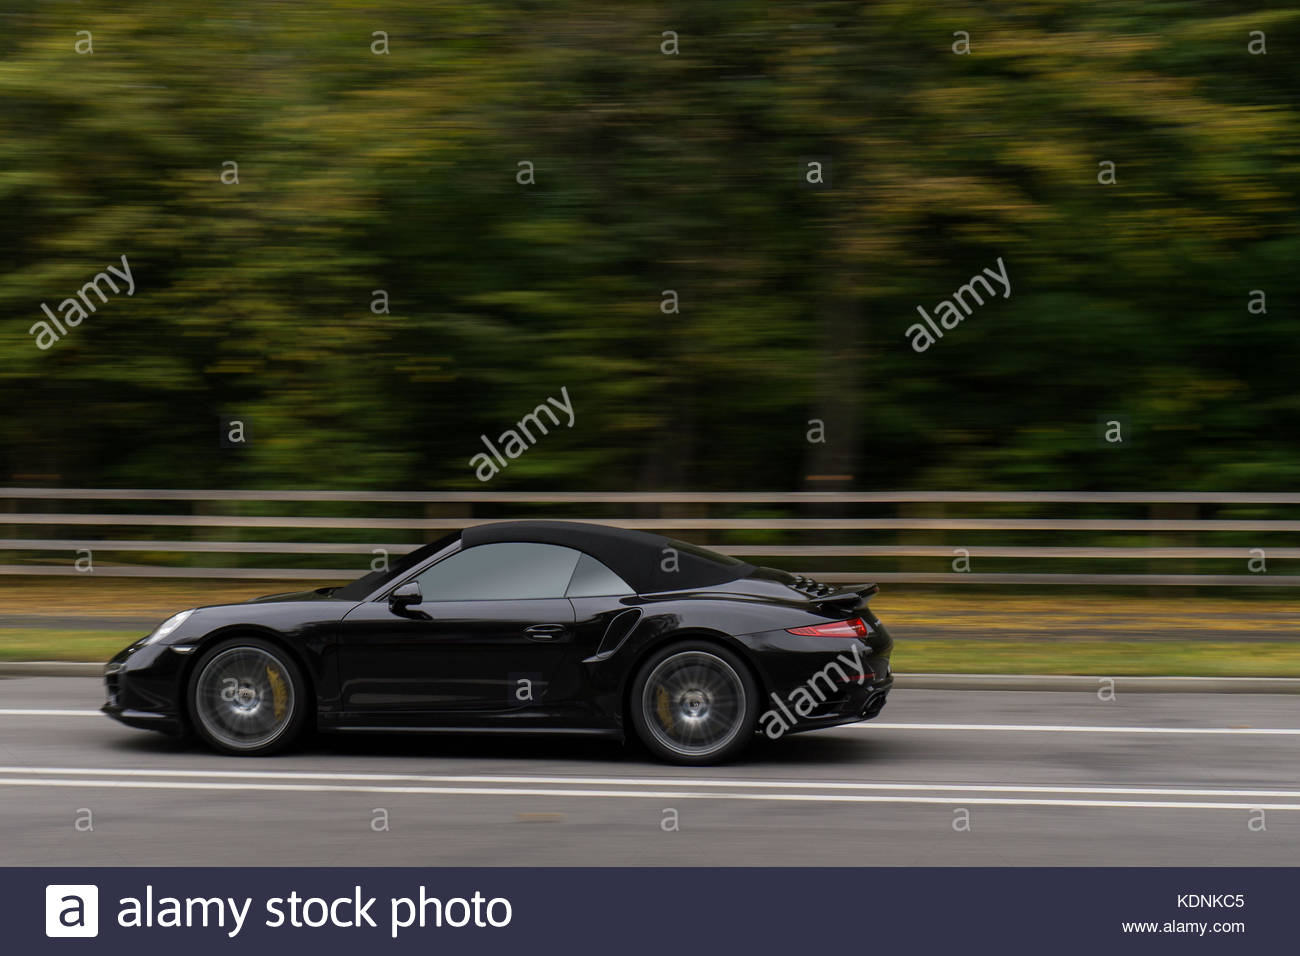 Black Cabrio on Country Road - Stock Image